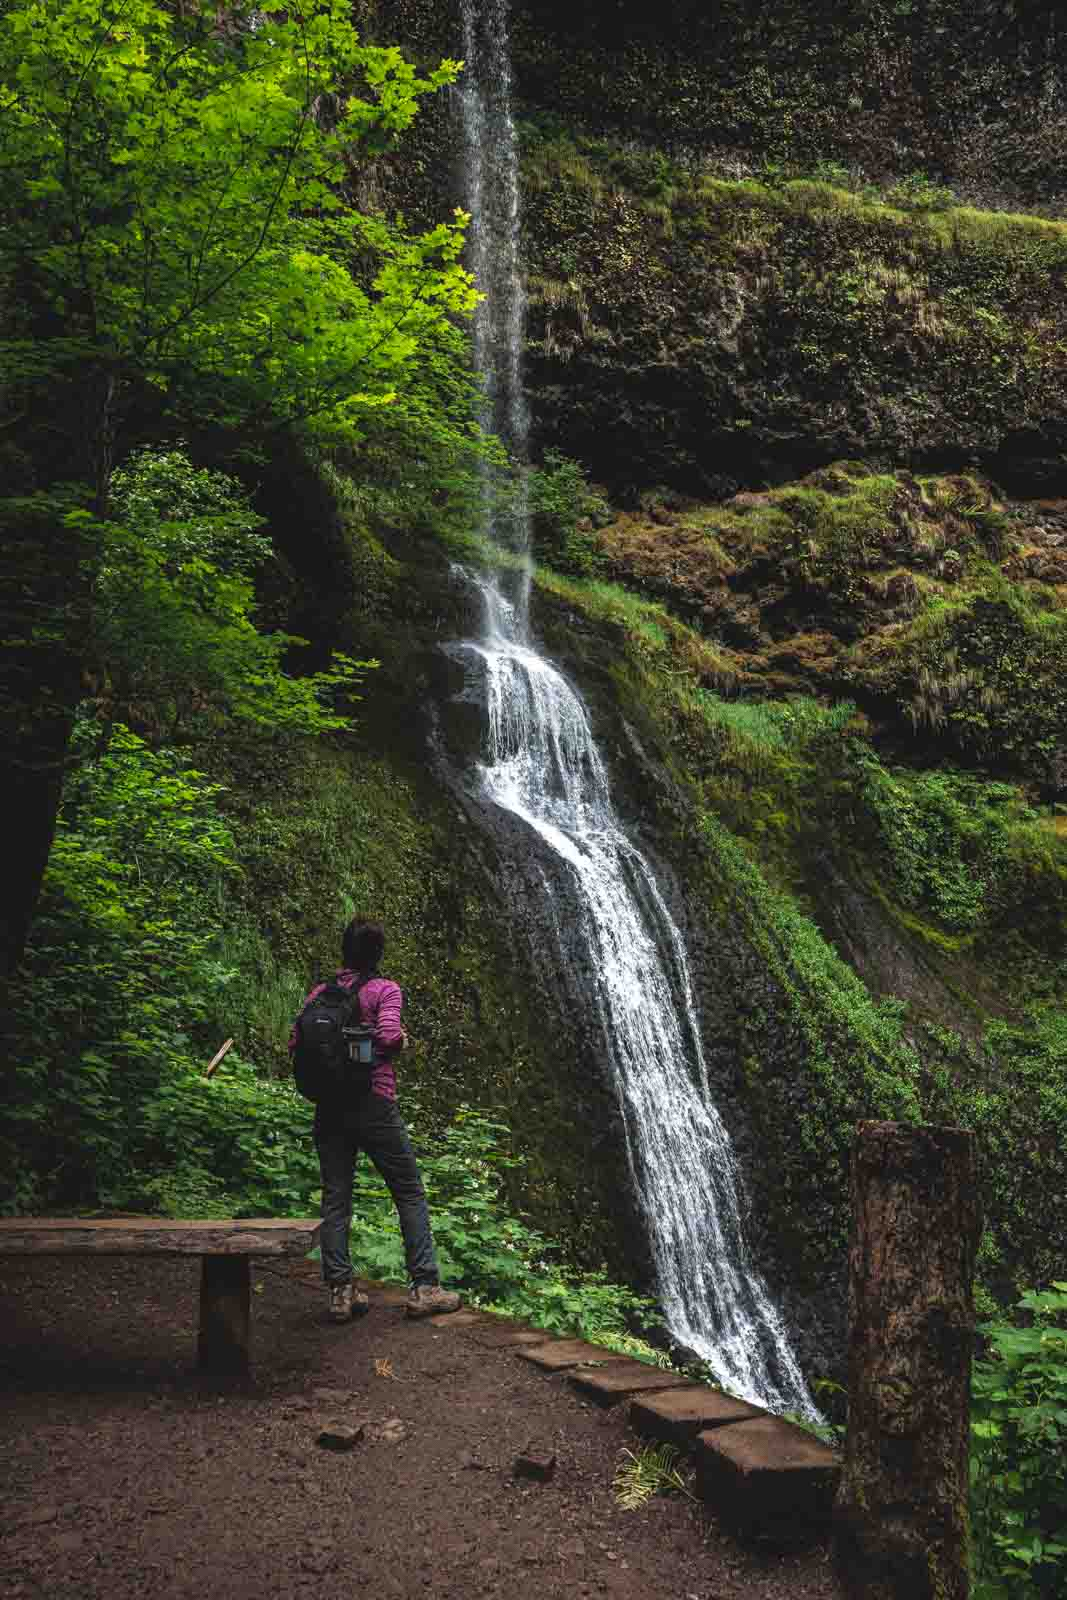 Winter Falls is an impressive waterfall in you'll encounter during your Silver Falls hike.